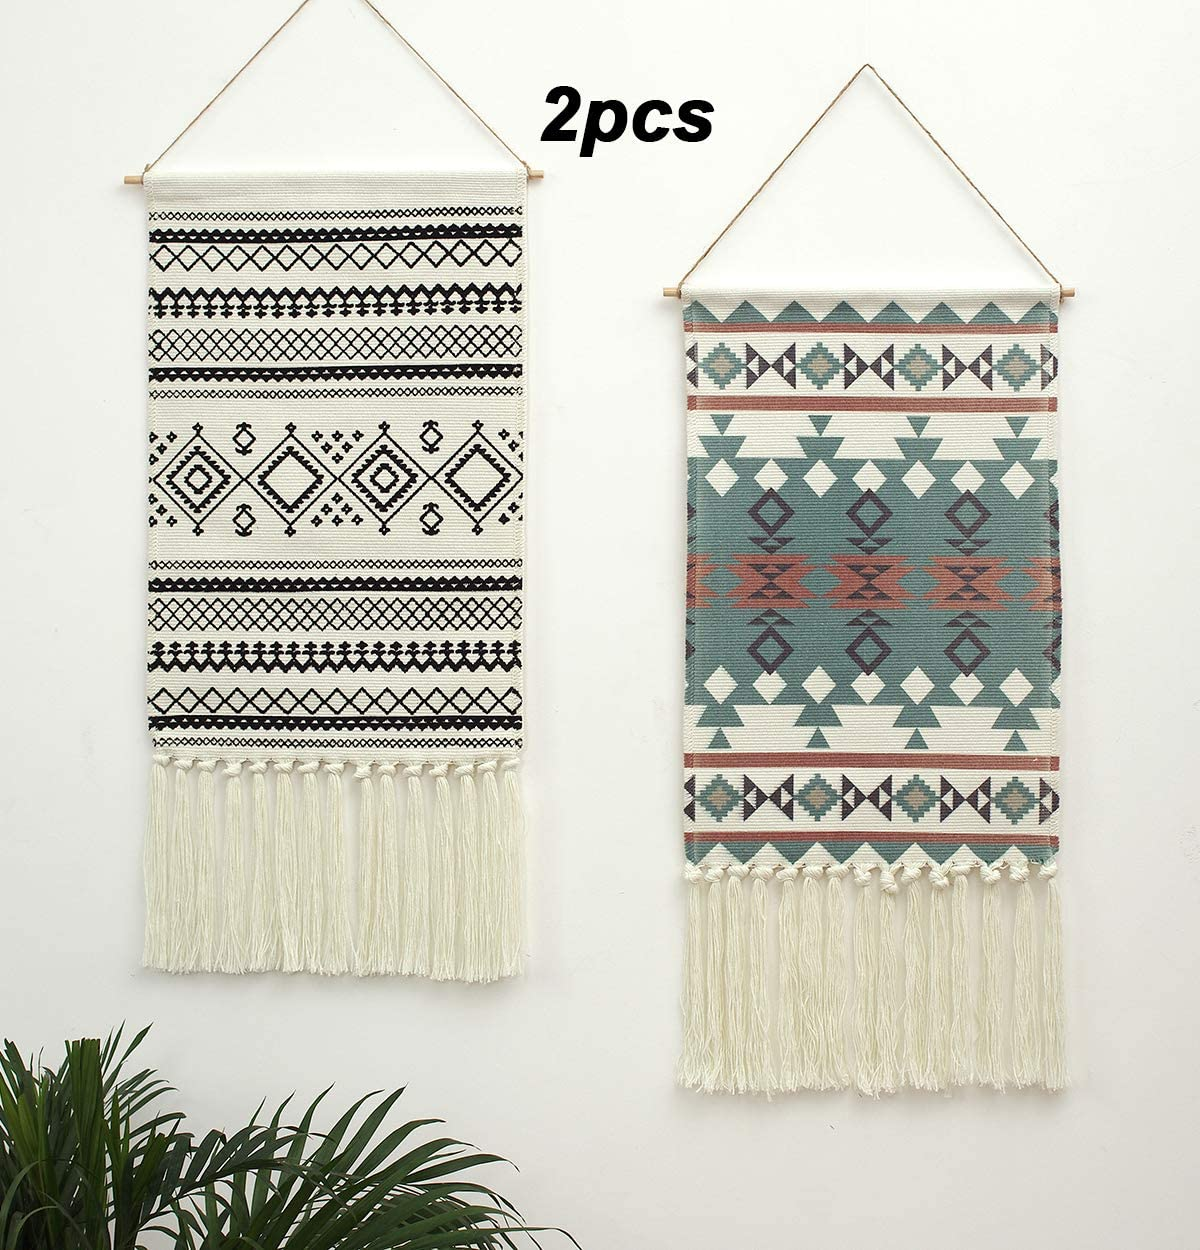 2PCS Macrame Woven Wall Hanging Tapestry, Indian Boho Chic Bohemian Aztec Home Decor Geometric Art Decor Boho Backdrop, Beautiful Apartment Dorm Room Door Decoration, 17.3 W x 33 L